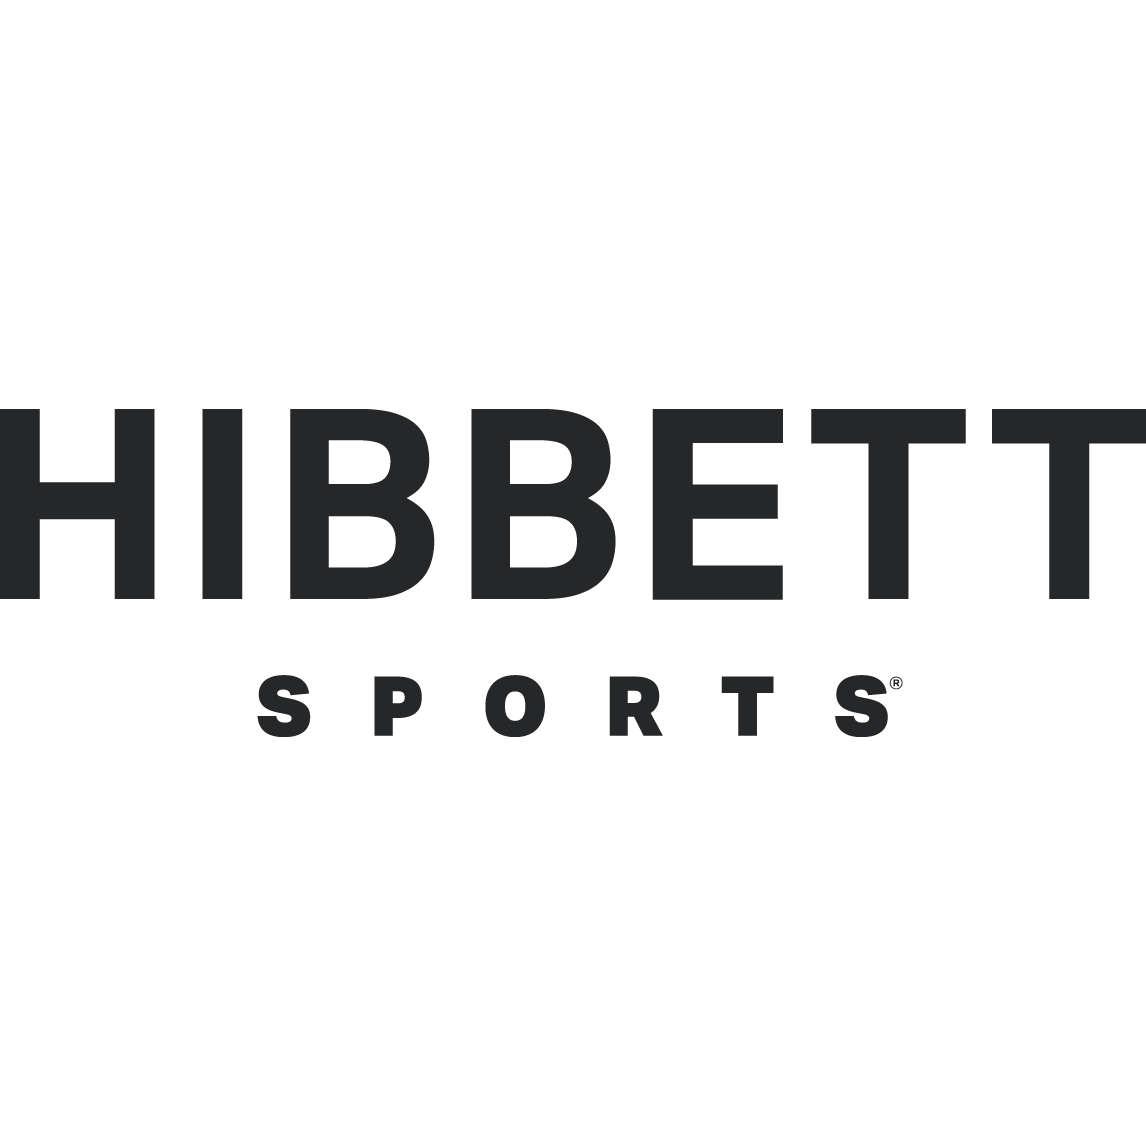 Hibbett Sports - Closed